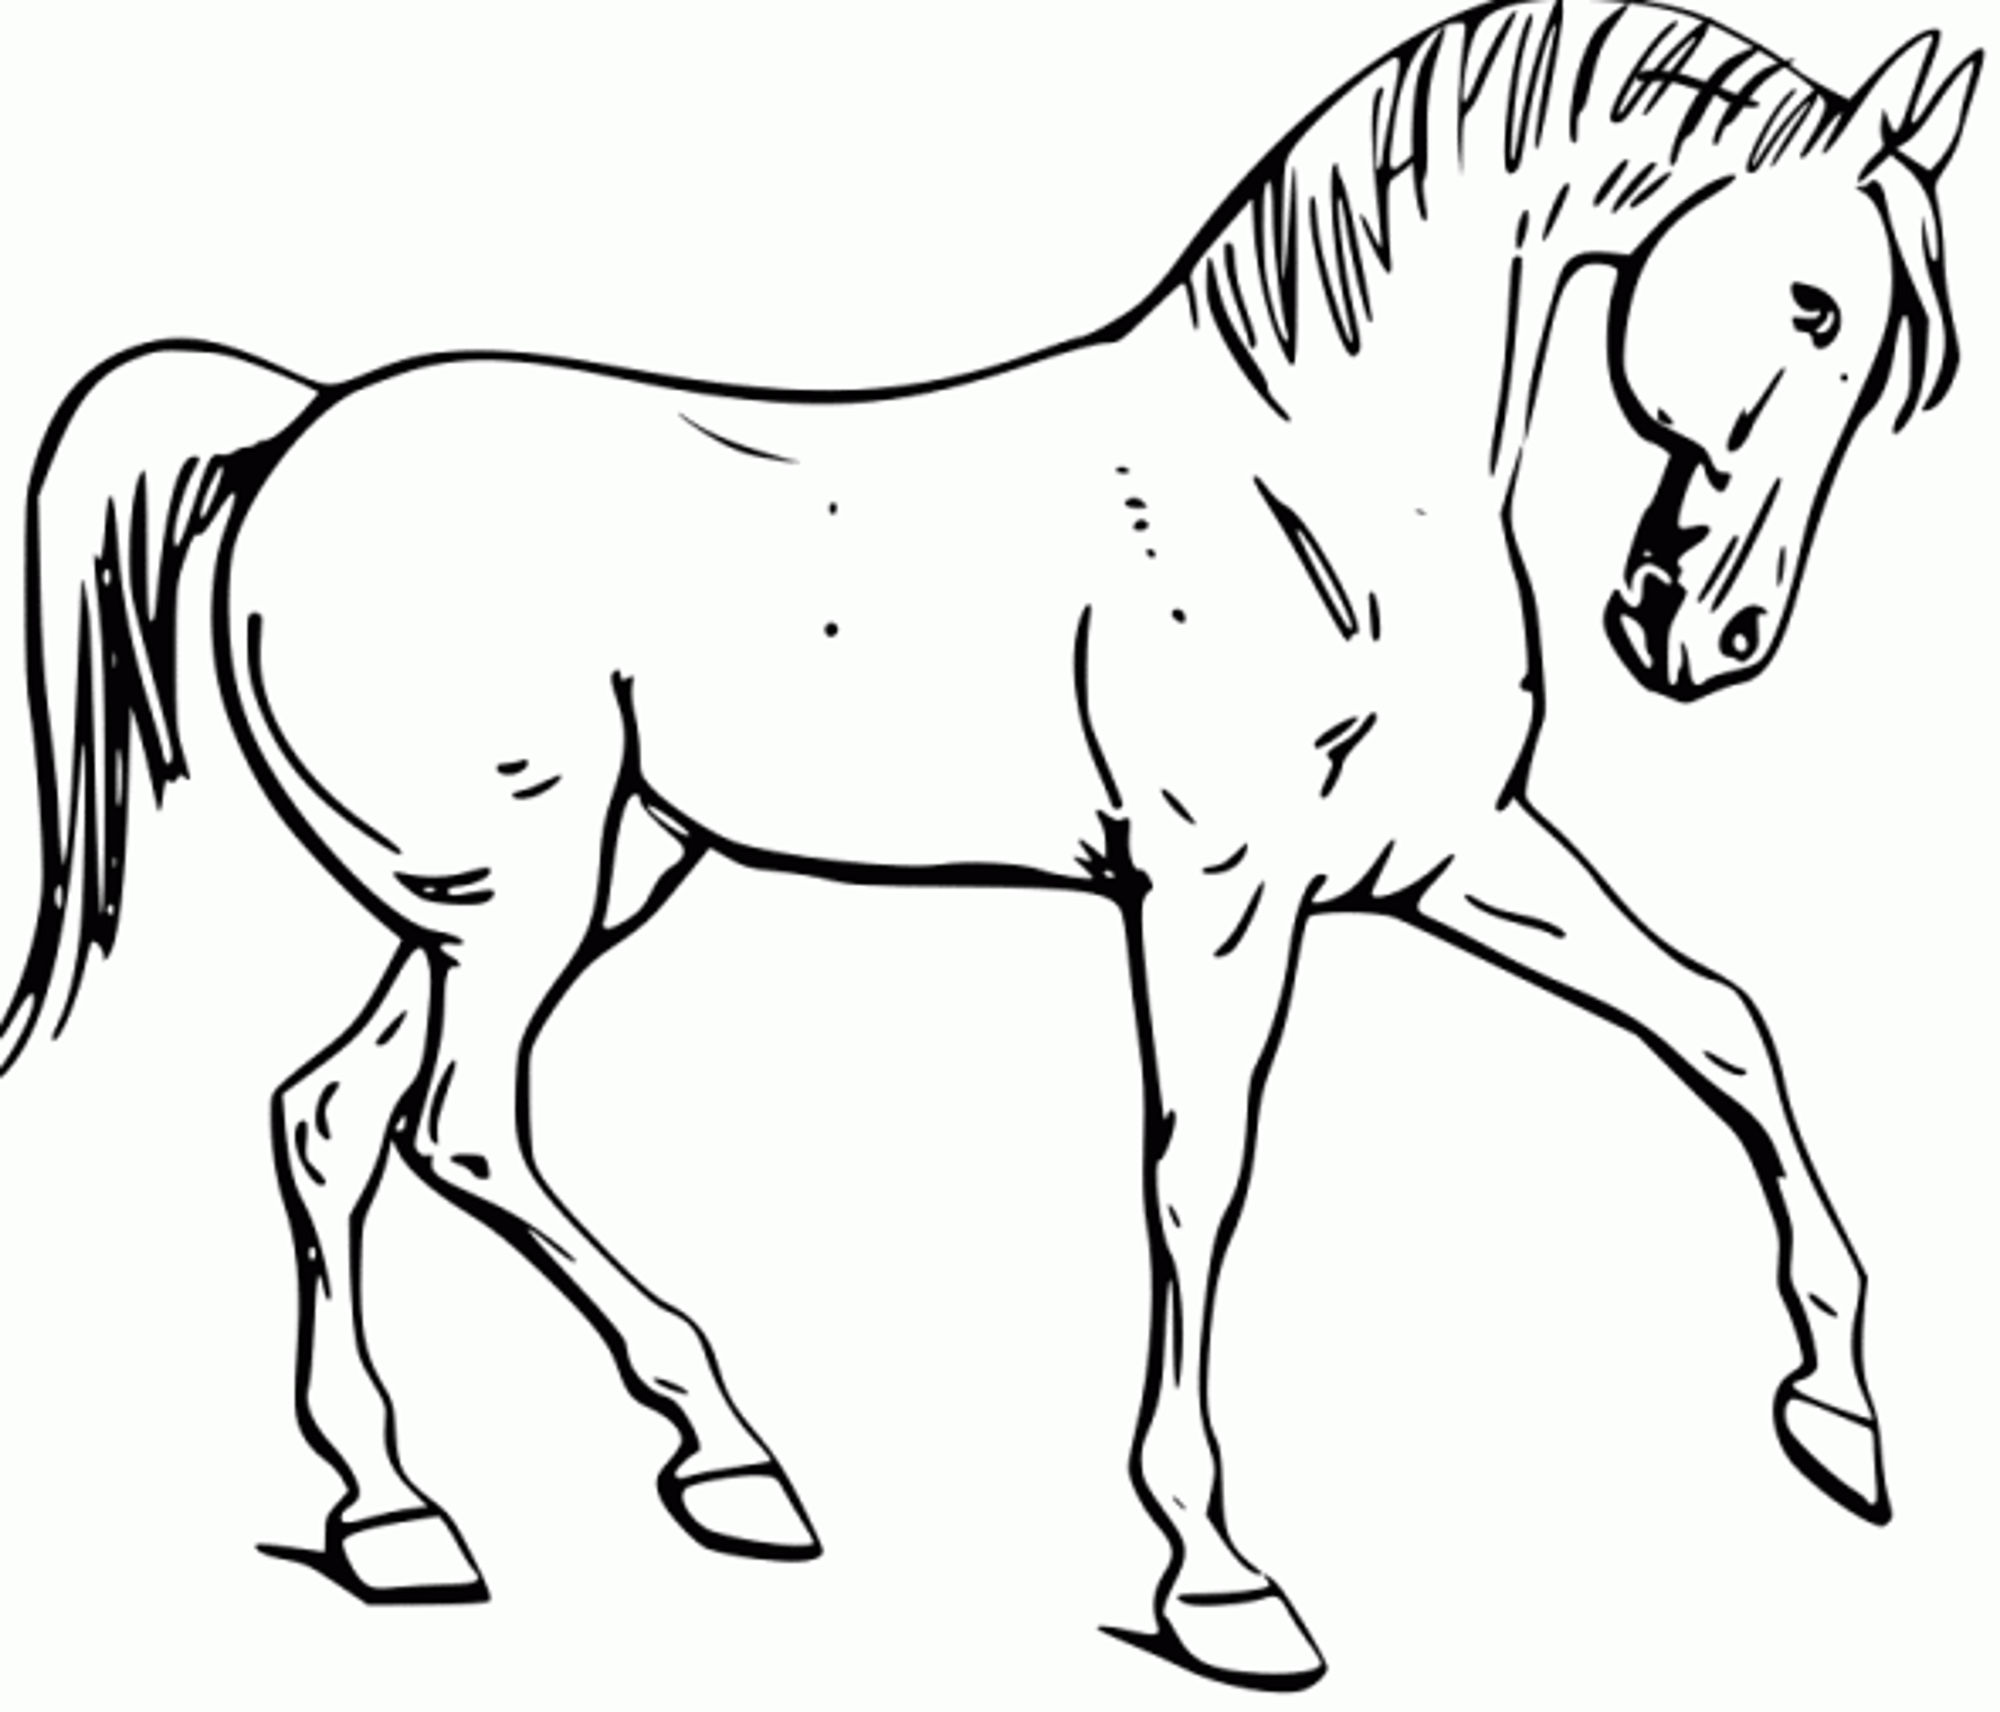 2000x1712 Coloring Pages Horses Horses Coloring Page Mustang Horse Coloring